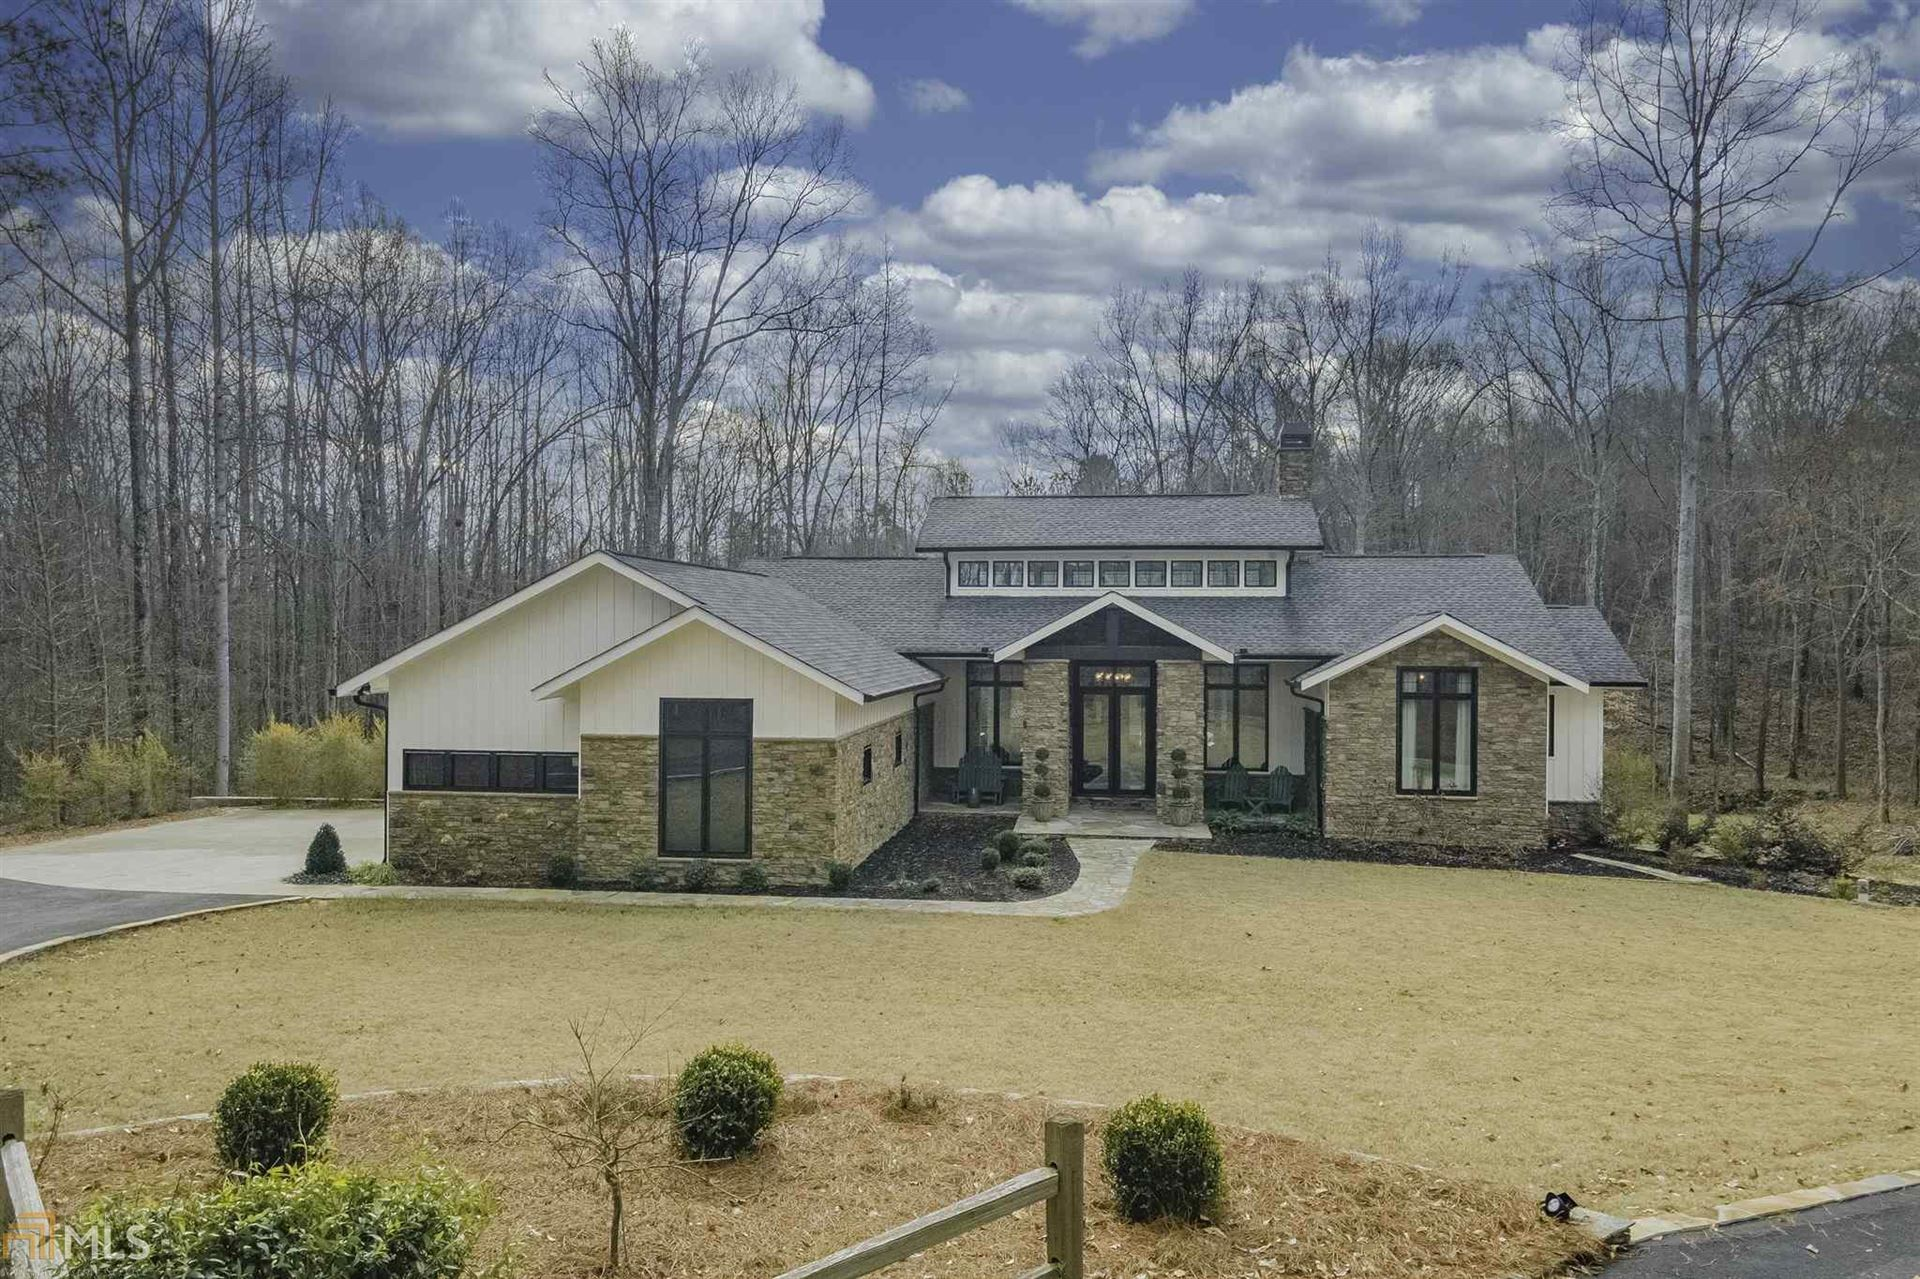 533 Elder Dr, Jefferson, GA 30549 - #: 8928652